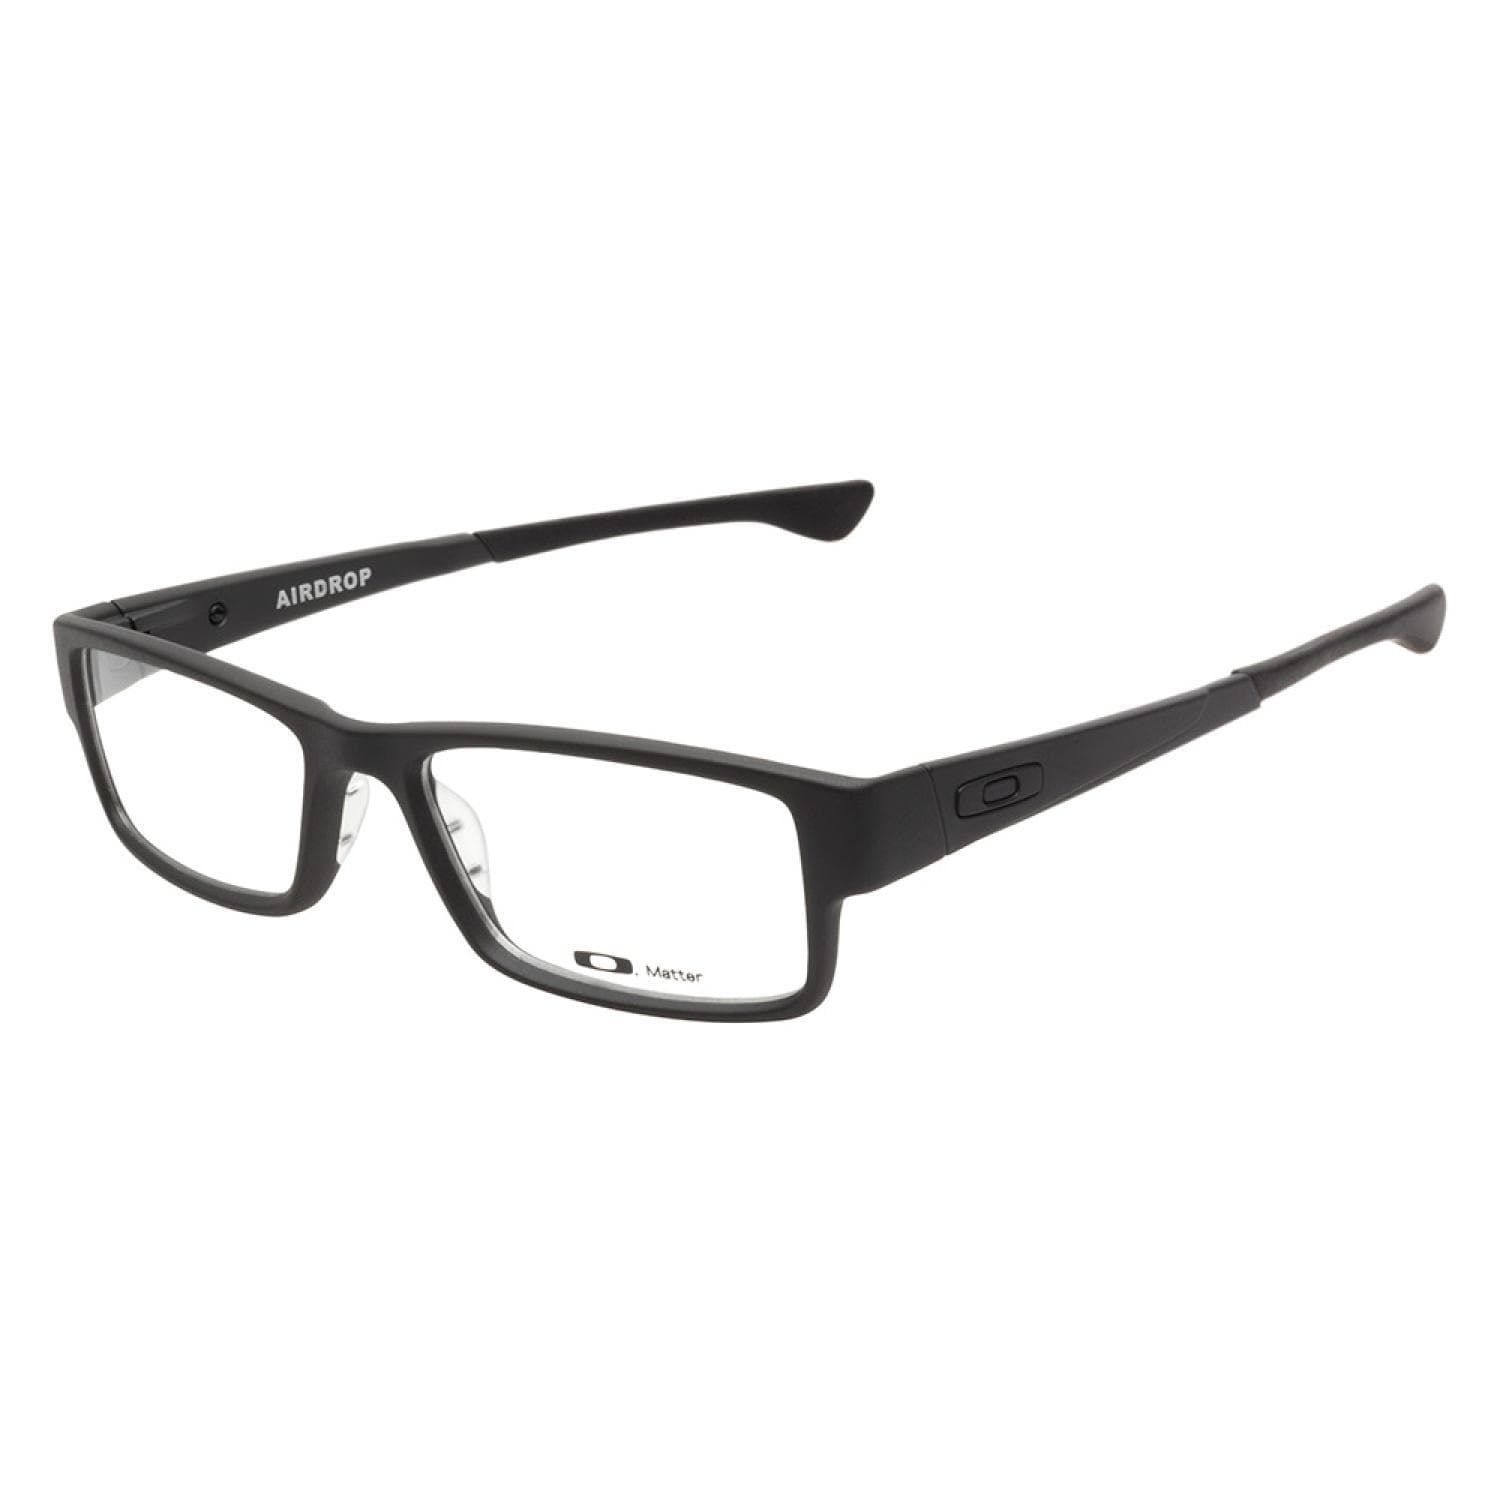 order oakley prescription lenses 86ek  cost of oakley prescription lenses cost of oakley prescription lenses